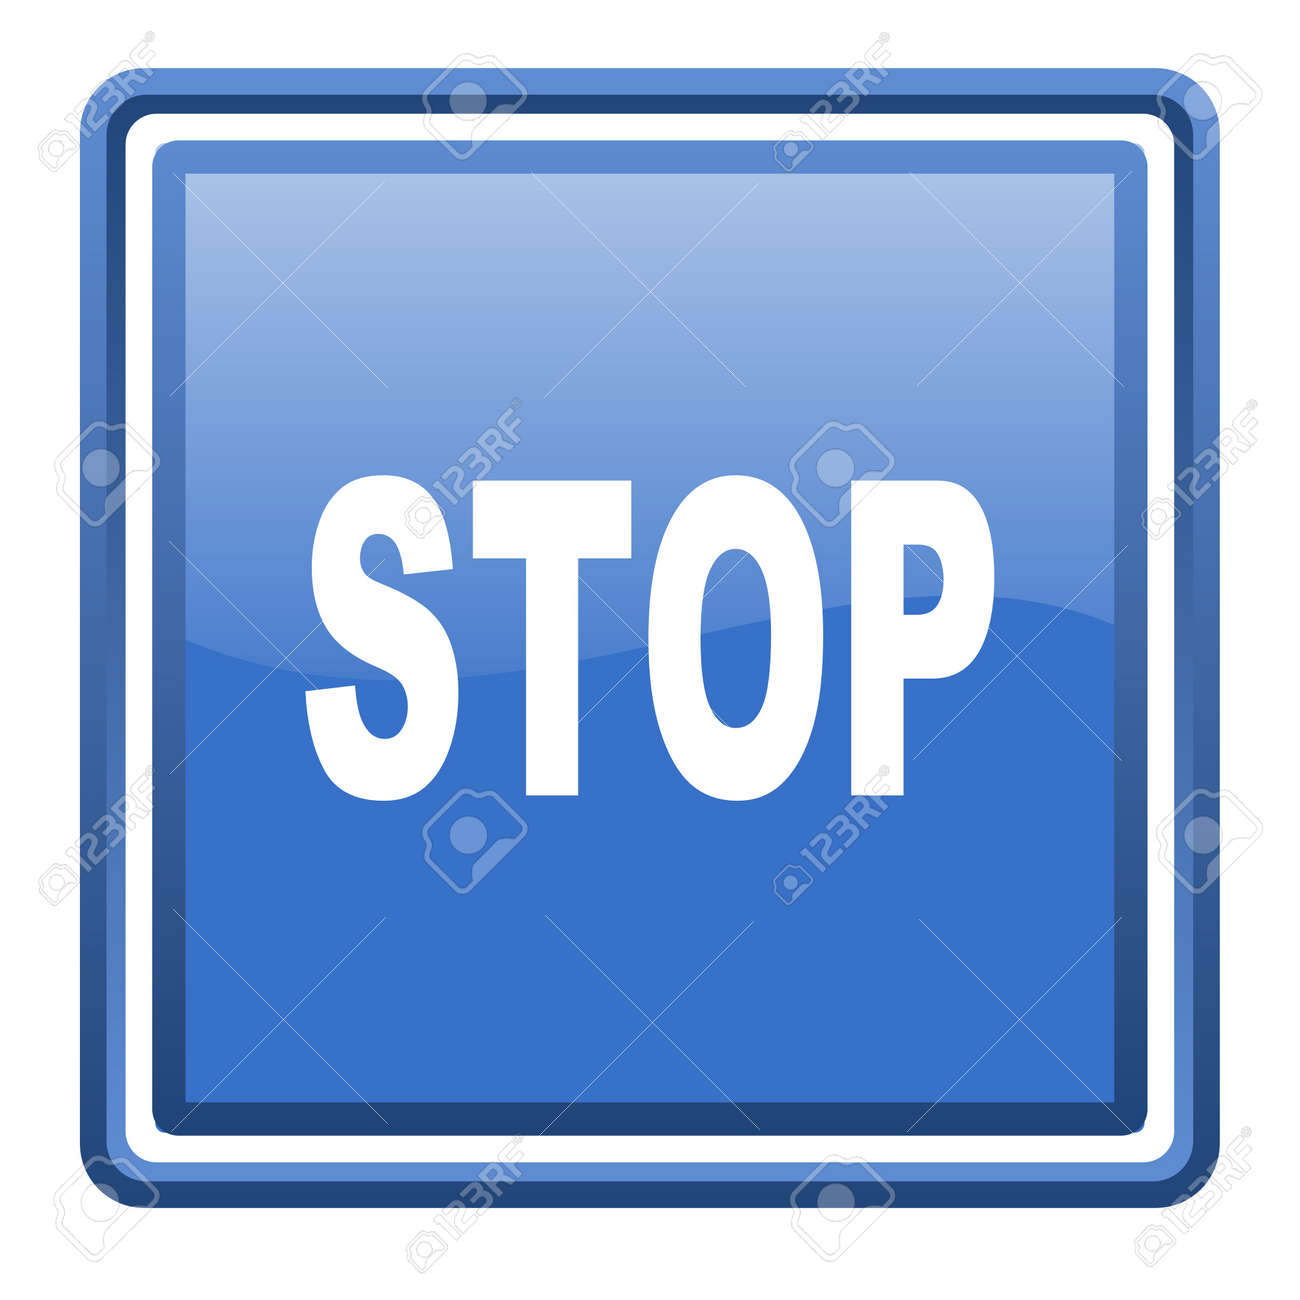 stop blue glossy square web icon isolated Stock Photo - 17093300